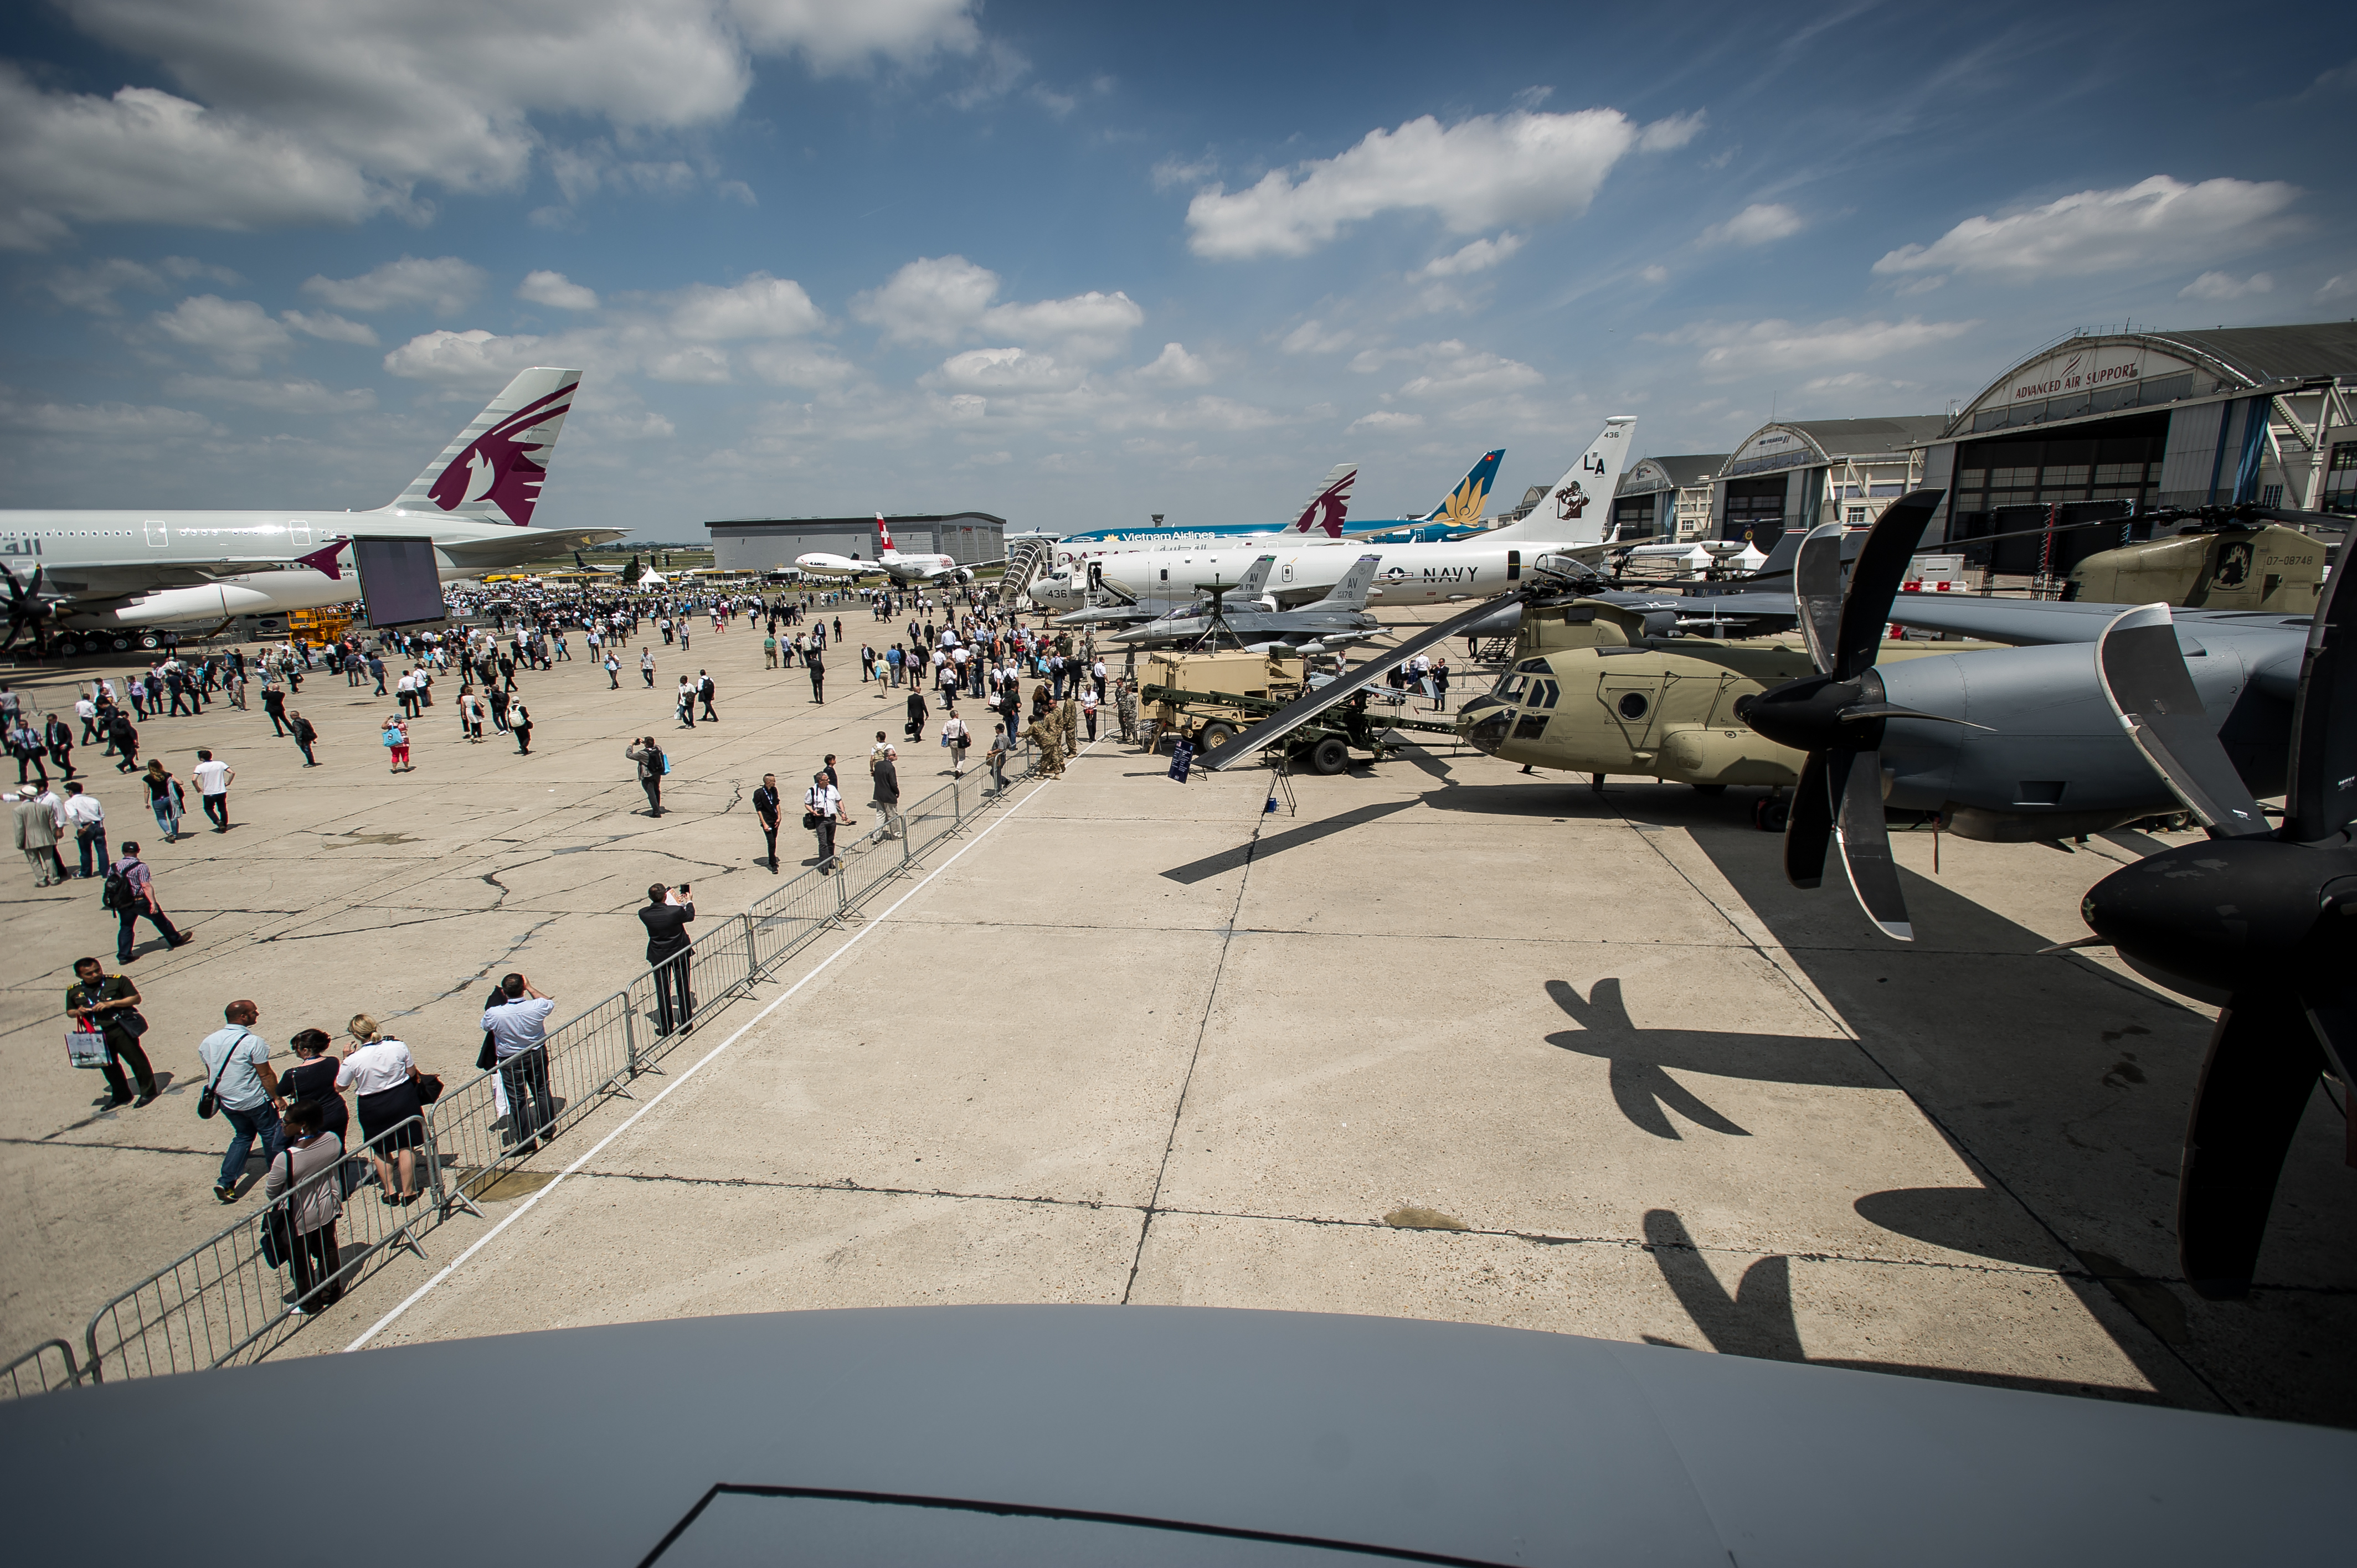 U.S. Army, Navy and Air Force aircraft are on display during the Paris Air Show at Le Bourget Airport, France, June 17, 2015. The Paris Air Show provides a collaborative opportunity to share and strengthen the U.S. and European strategic partnership that has been forged during the last seven decades and is built on a foundation of shared values, experiences and vision. The event is expected to bring in 315,000 people, a record 2,215 companies, 150 aircraft, and will span 324,000 square meters. (U.S. Air Force photo/ Tech. Sgt. Ryan Crane)